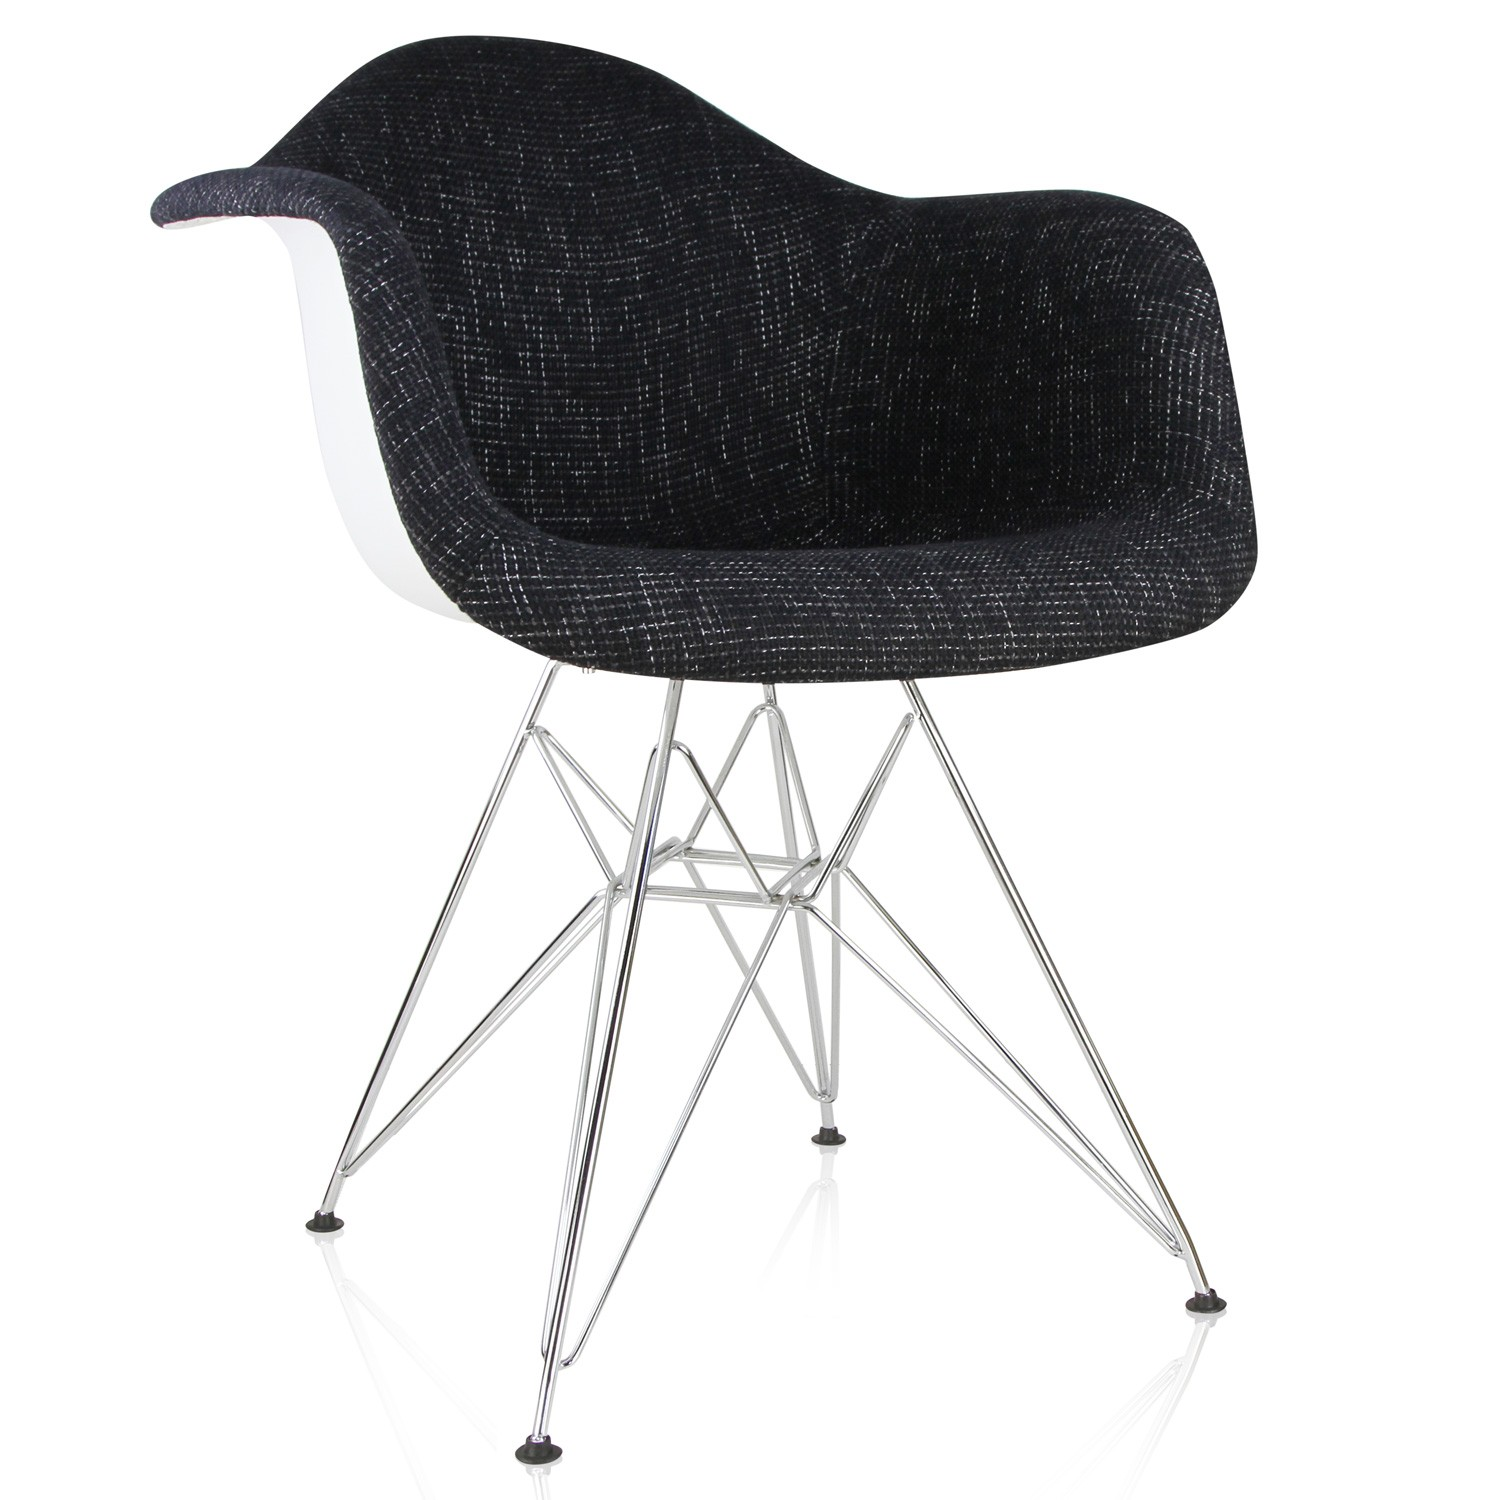 Eames Style Black Woven Fabric Upholstered Accent Arm Chair · Display  Gallery Item 1 ...